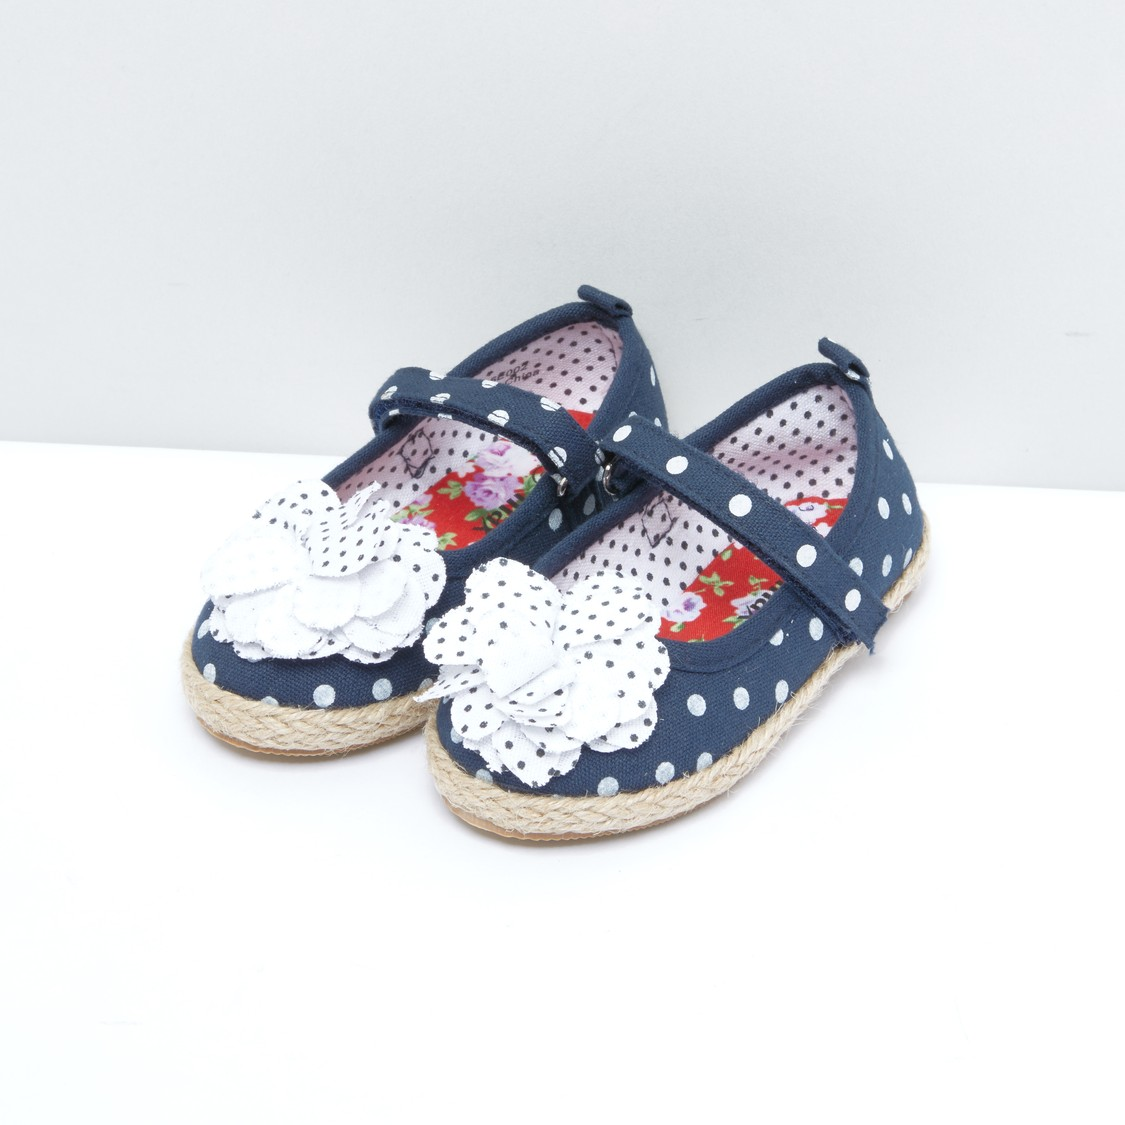 Flower Applique Detail Espadrilles with Hook and Loop Closure